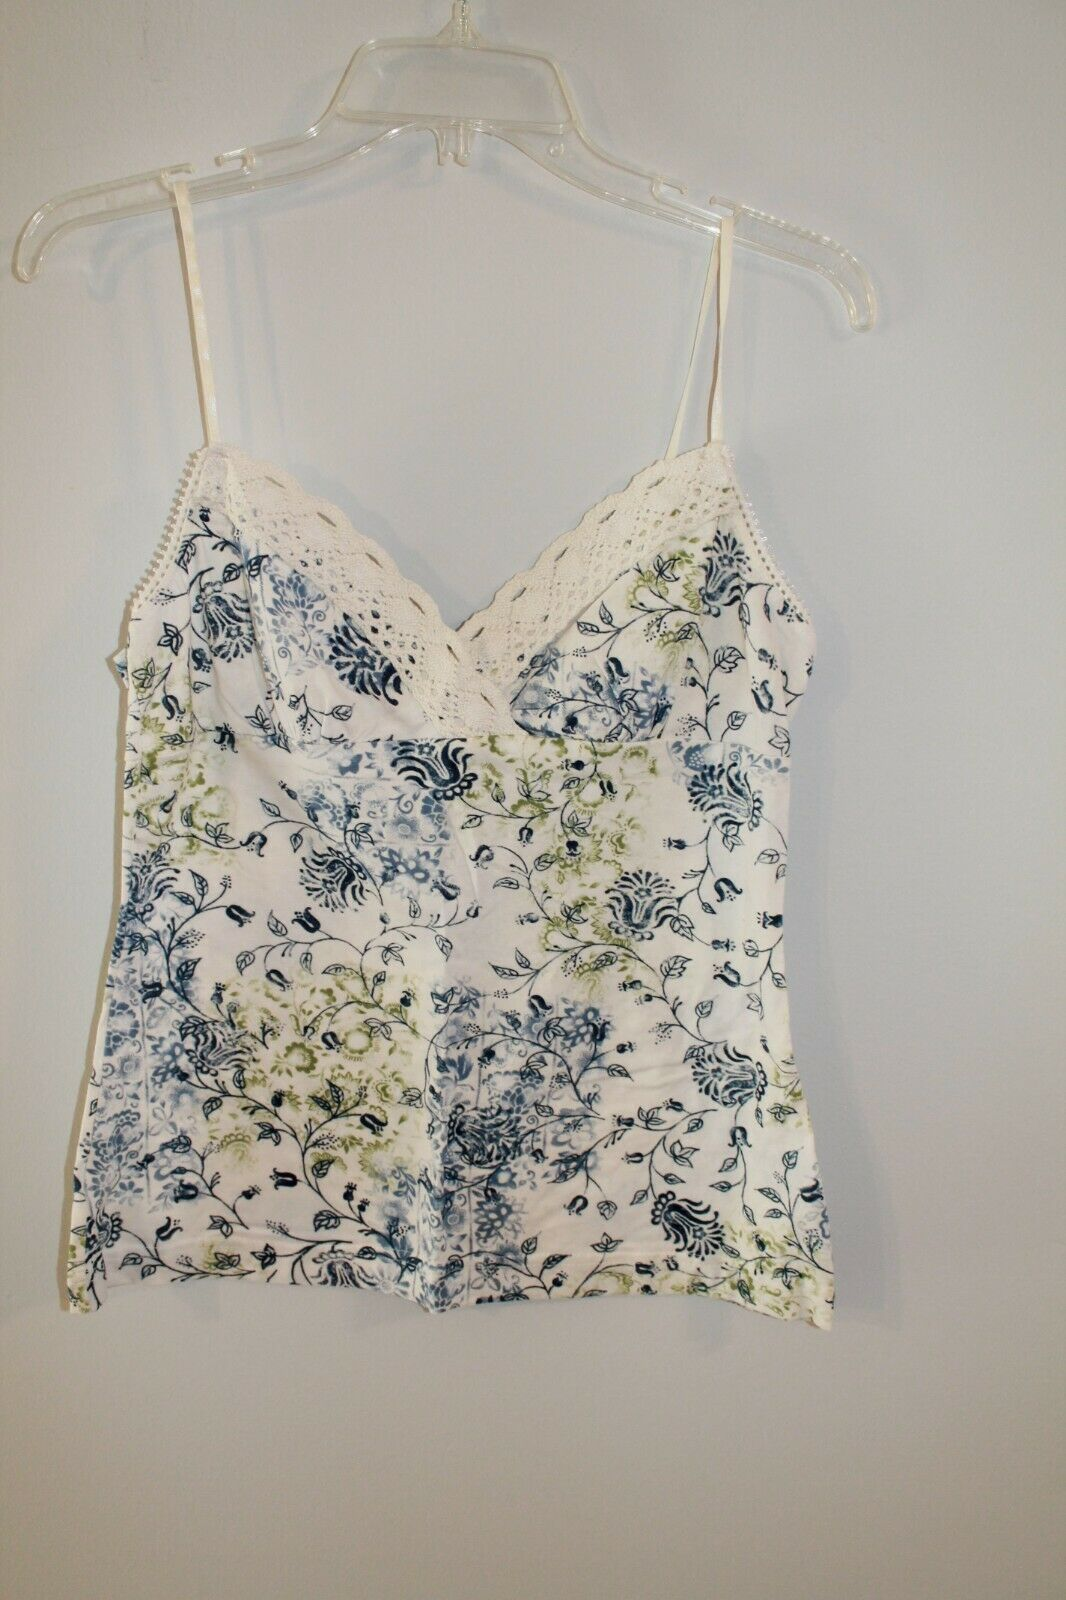 SELF ESTEEM blue green cream floral  v-neck sleeveless blouse tank top size L 7